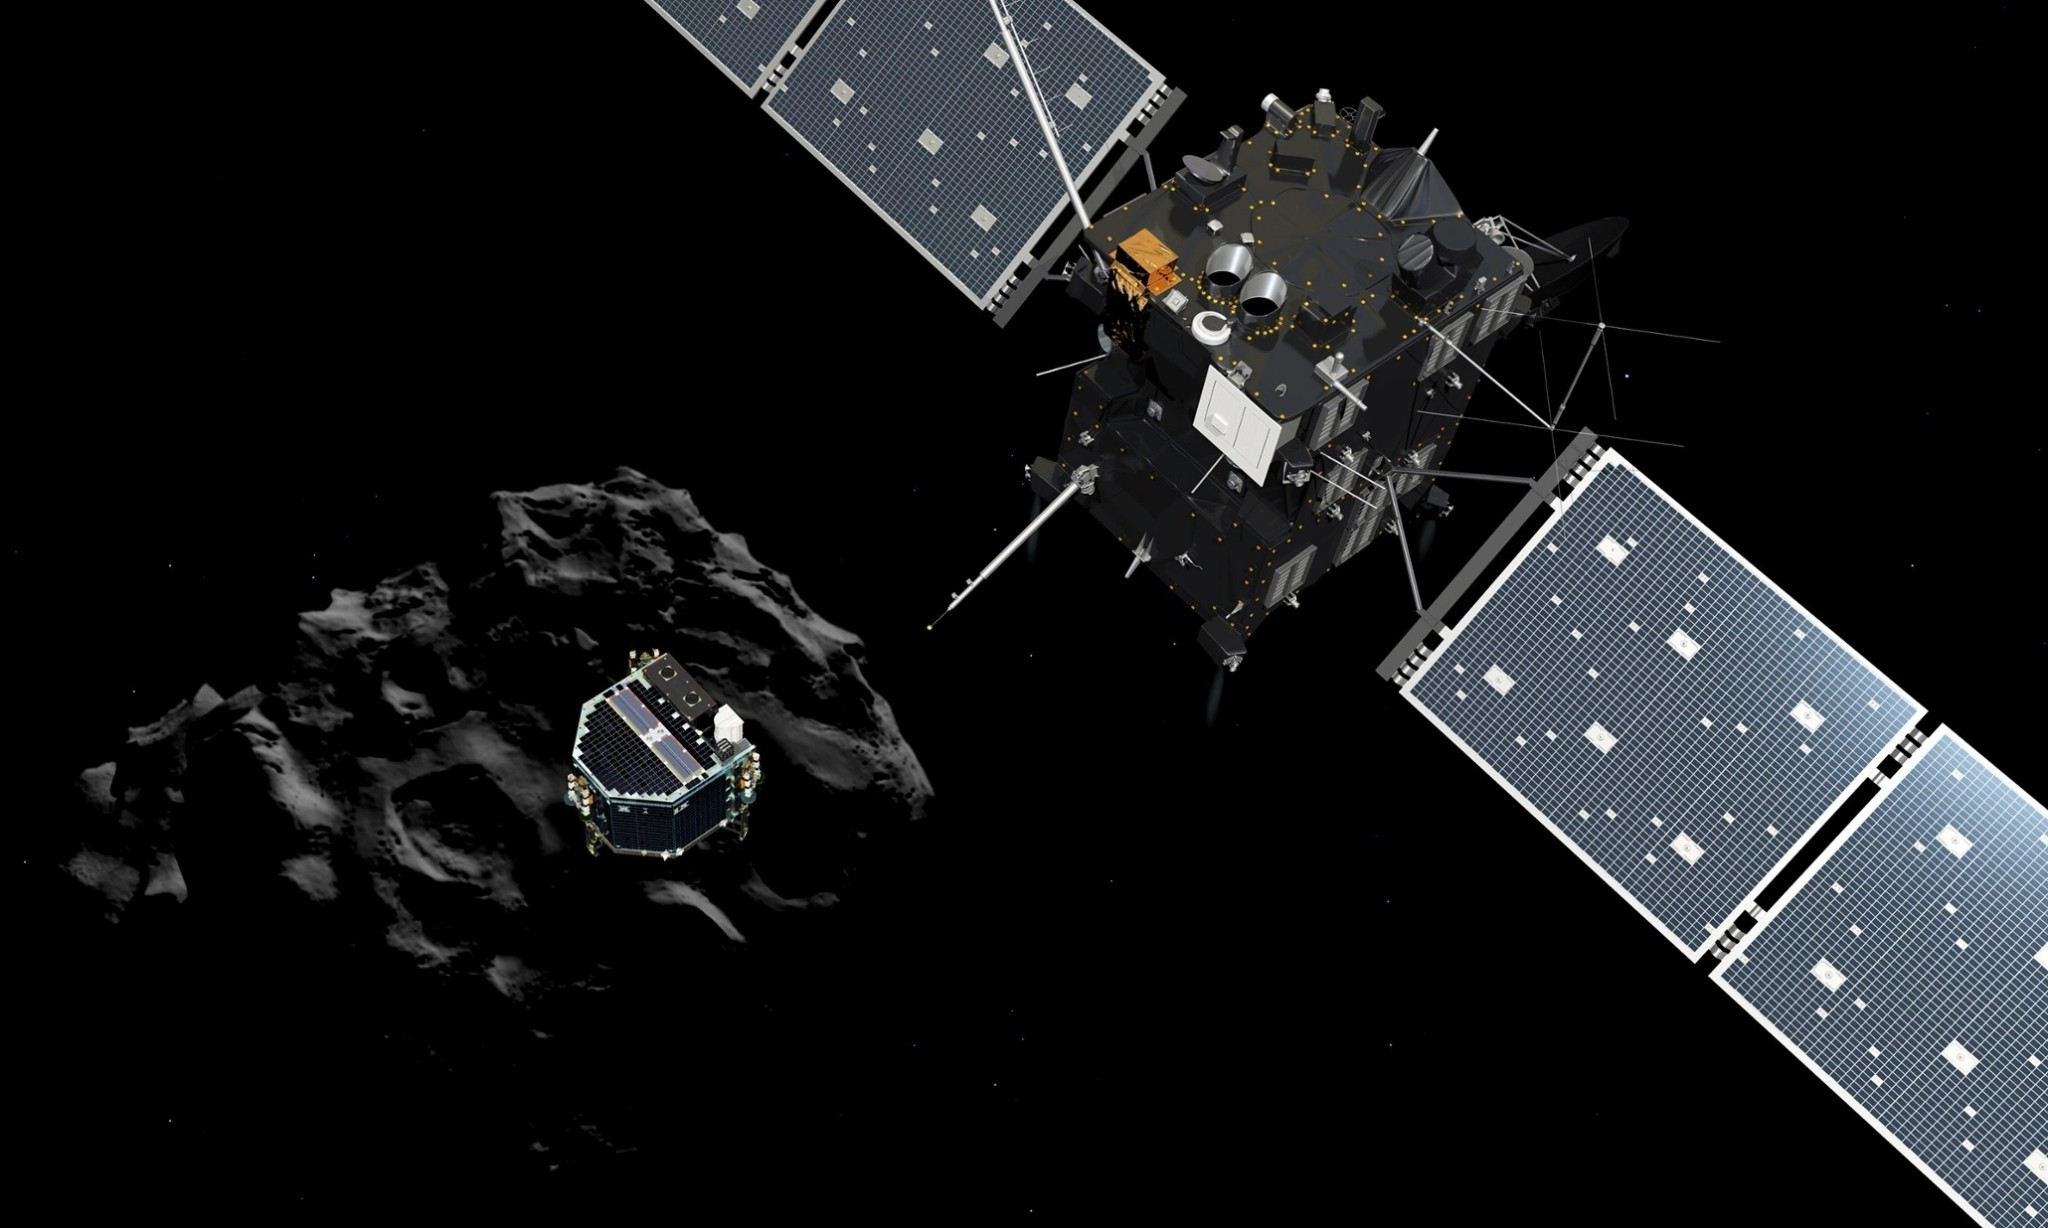 Why is the Rosetta comet landing so exciting?